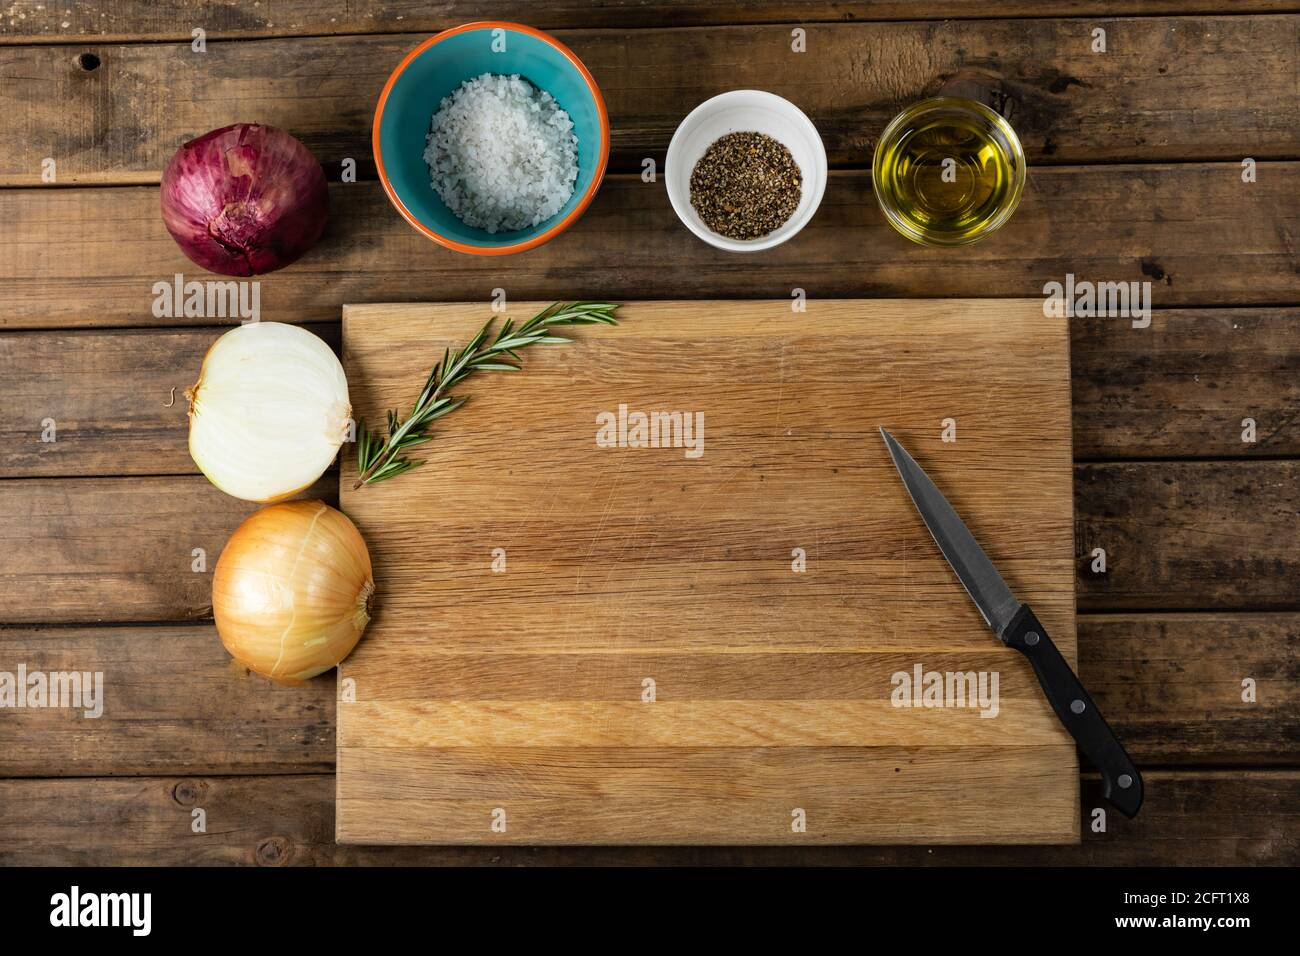 View of a wooden cutting board and knife with onion and seasonings arranged on a on a textured woode Stock Photo